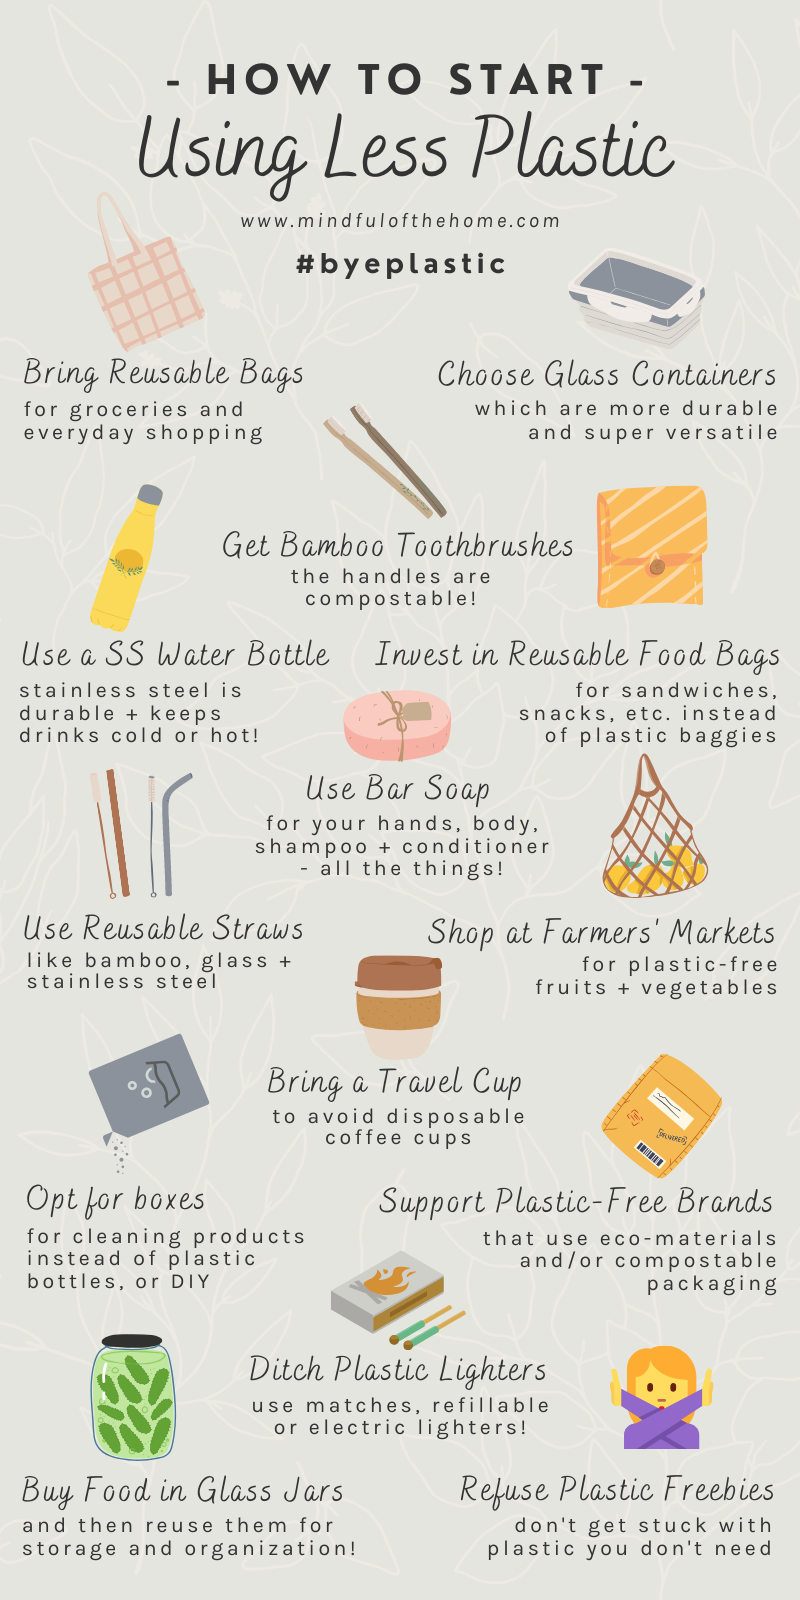 14 Easy Ways to Use Less Plastic at Home